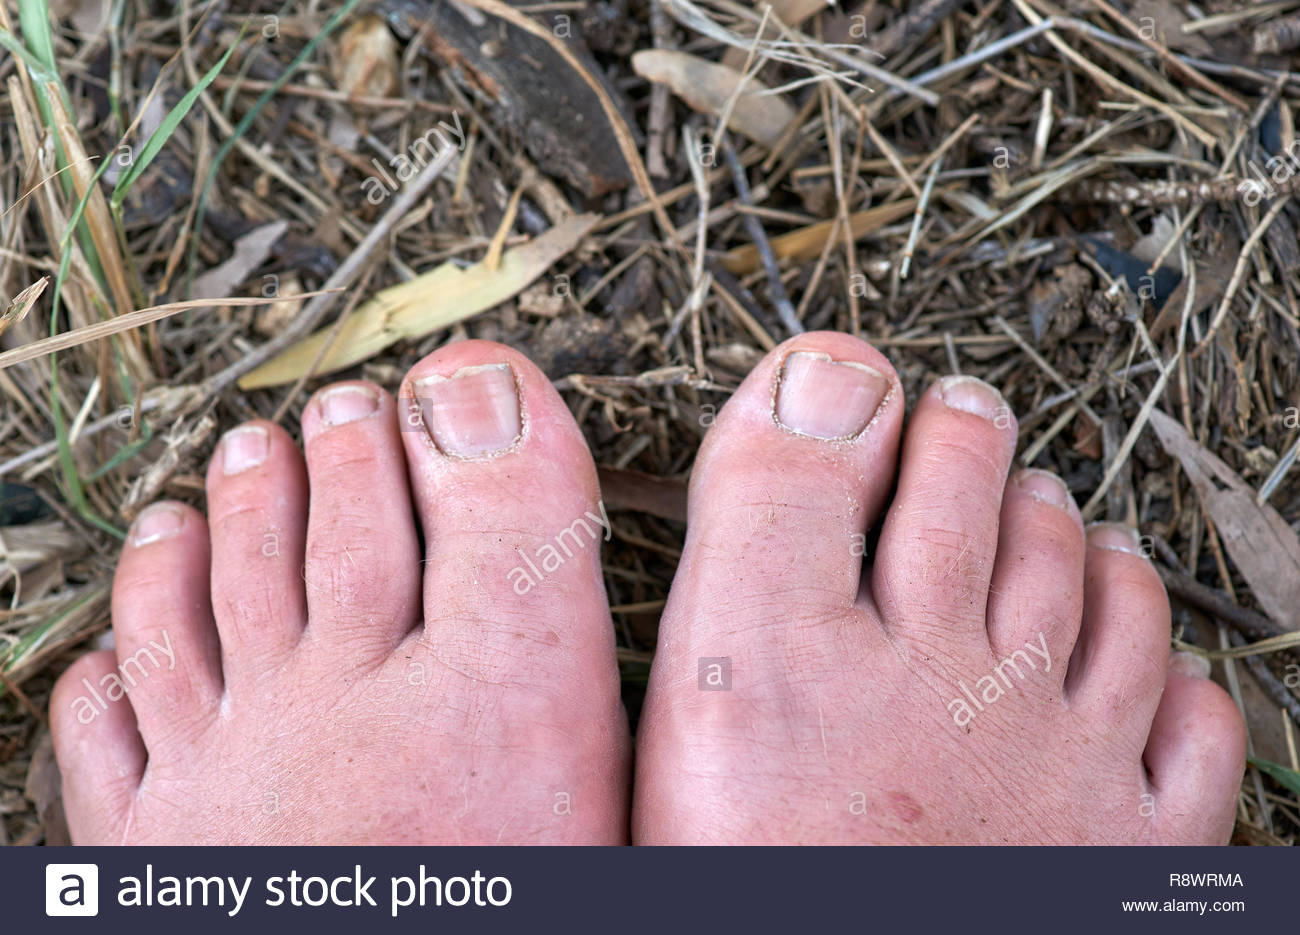 An image detailing a pair of middle-aged, male - bare and sandy - feet on the ground; just the forefeet, with organic matter underneath. - Stock Image